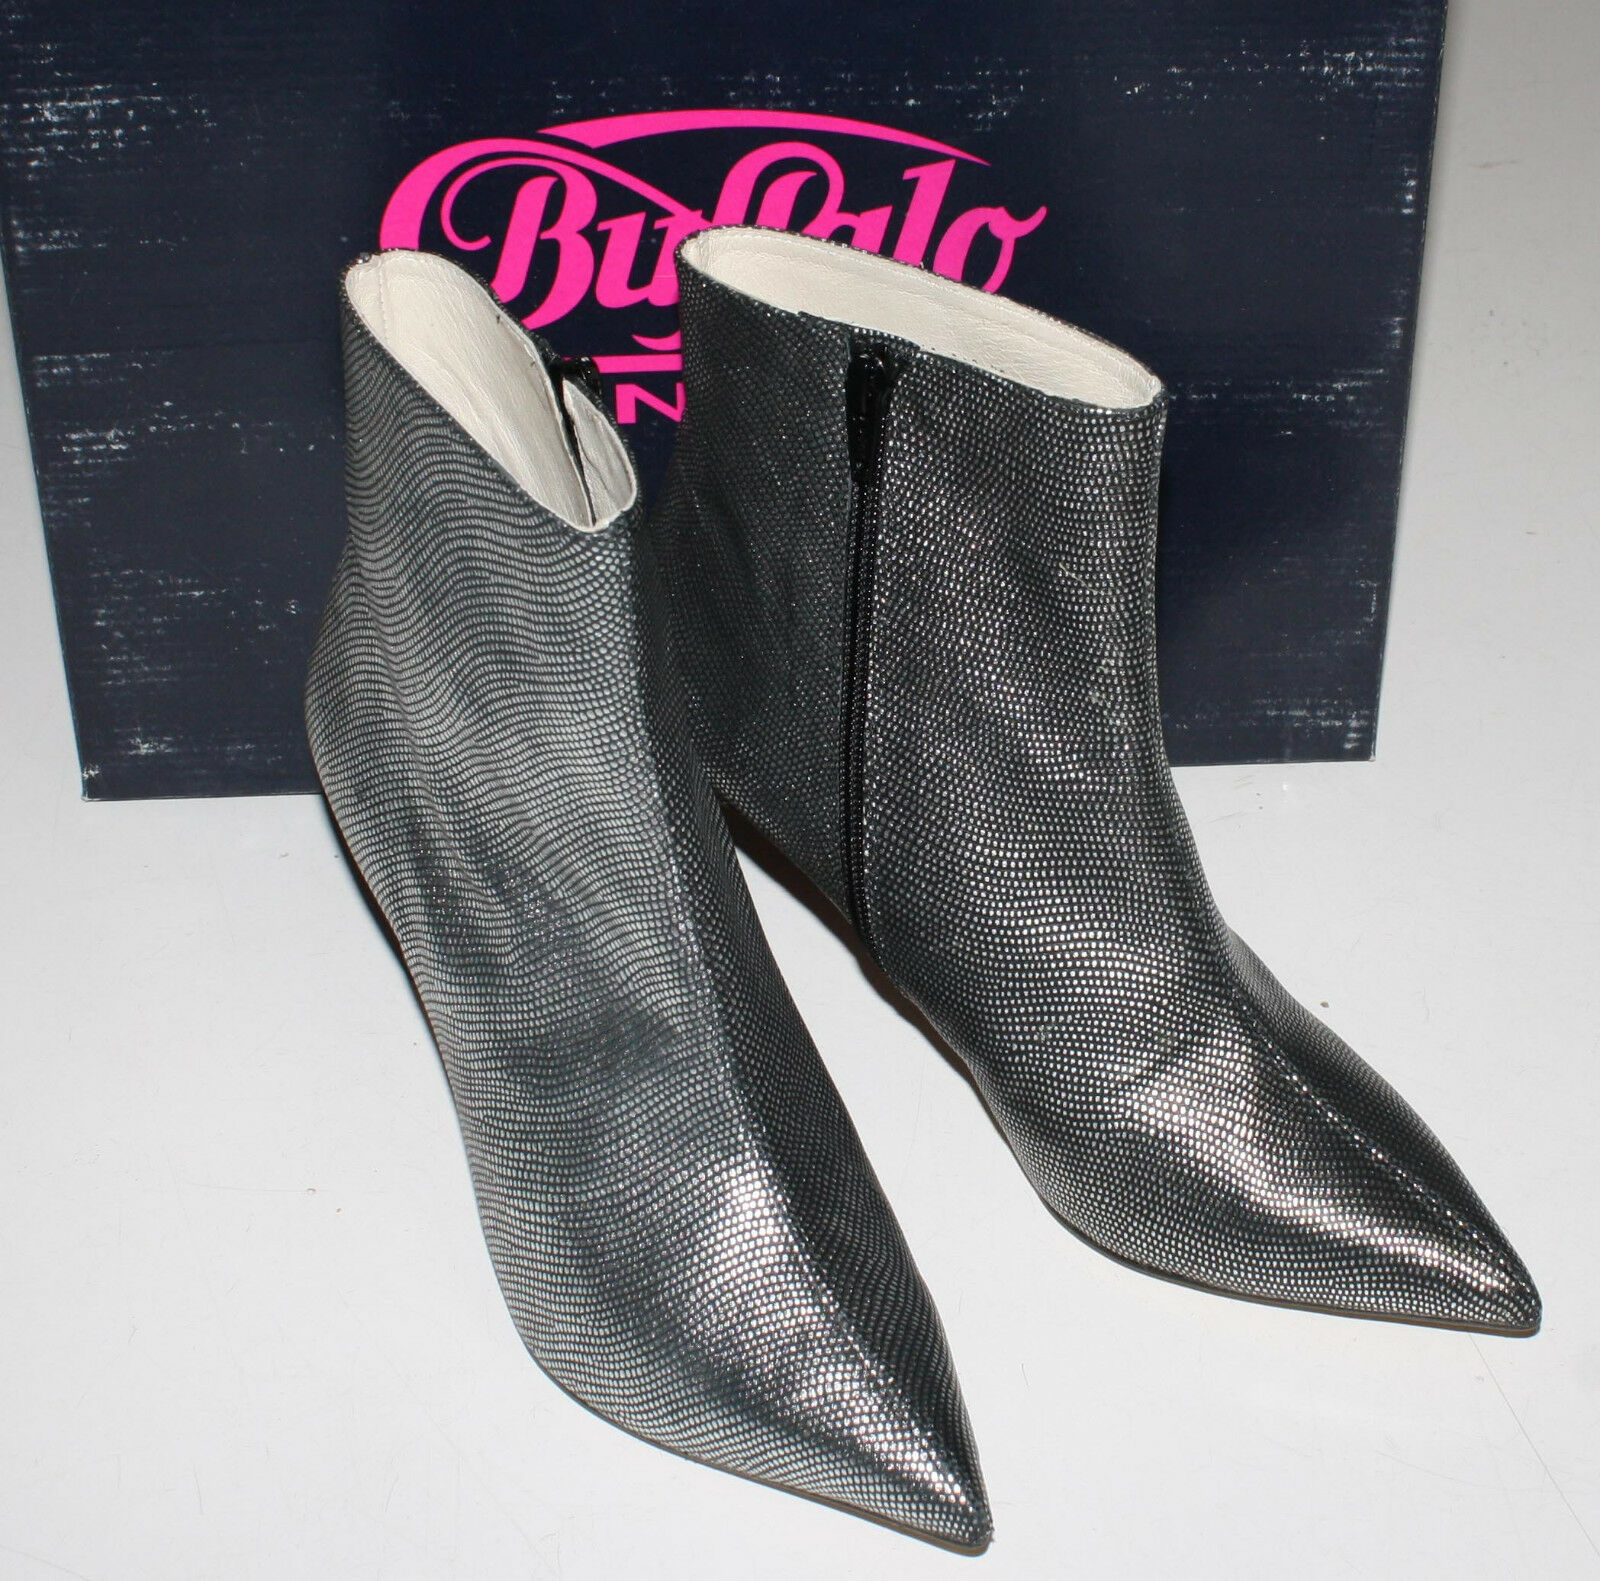 BUFFALO London Stiefeletten * 11864-302 Hubble Kenia * Gr. 38 silber